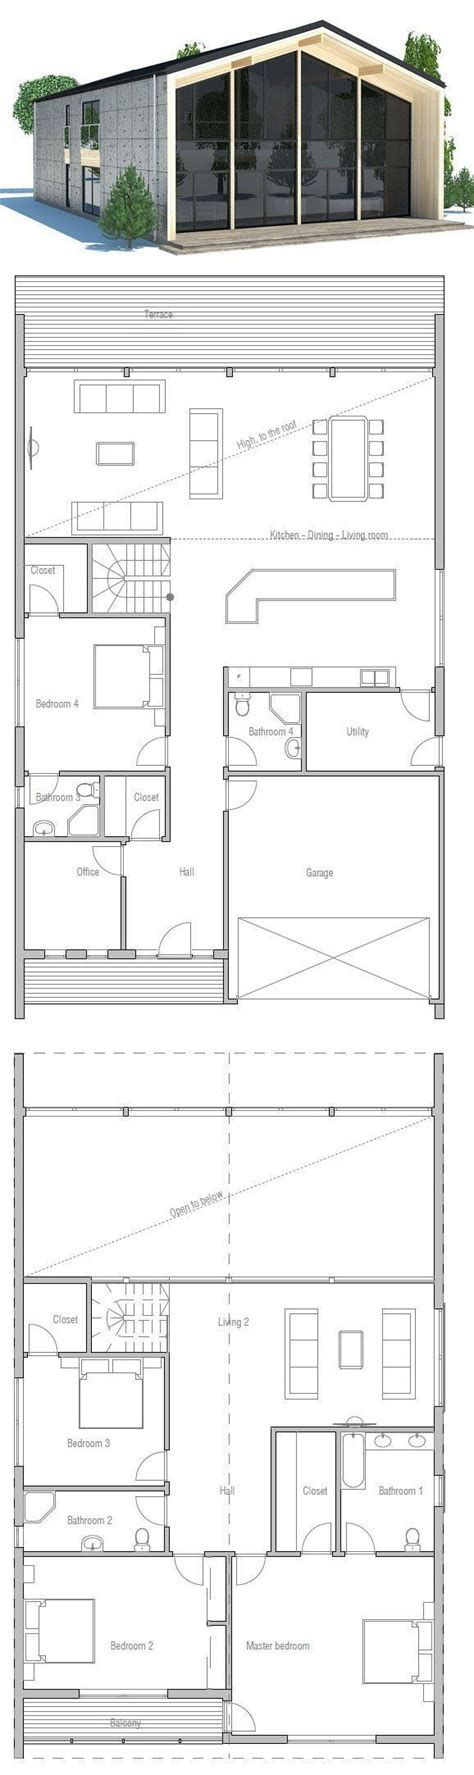 narrow lot modern house plans contemporry house to narrow lot modern architecture